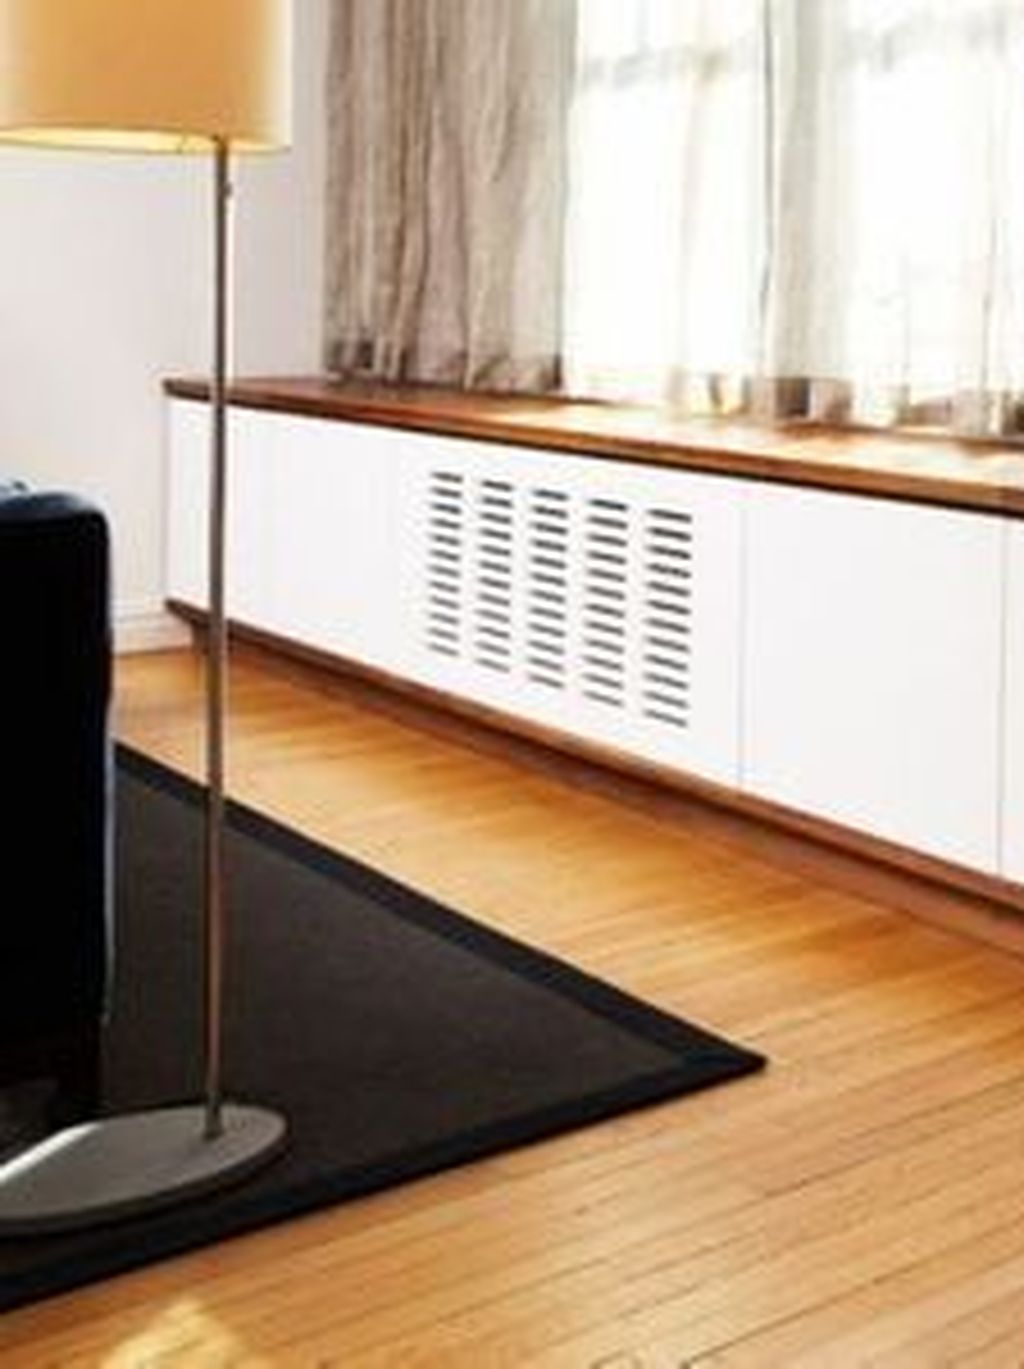 Inexpensive Radiators Design Ideas That Will Spruce Up Your Space 27